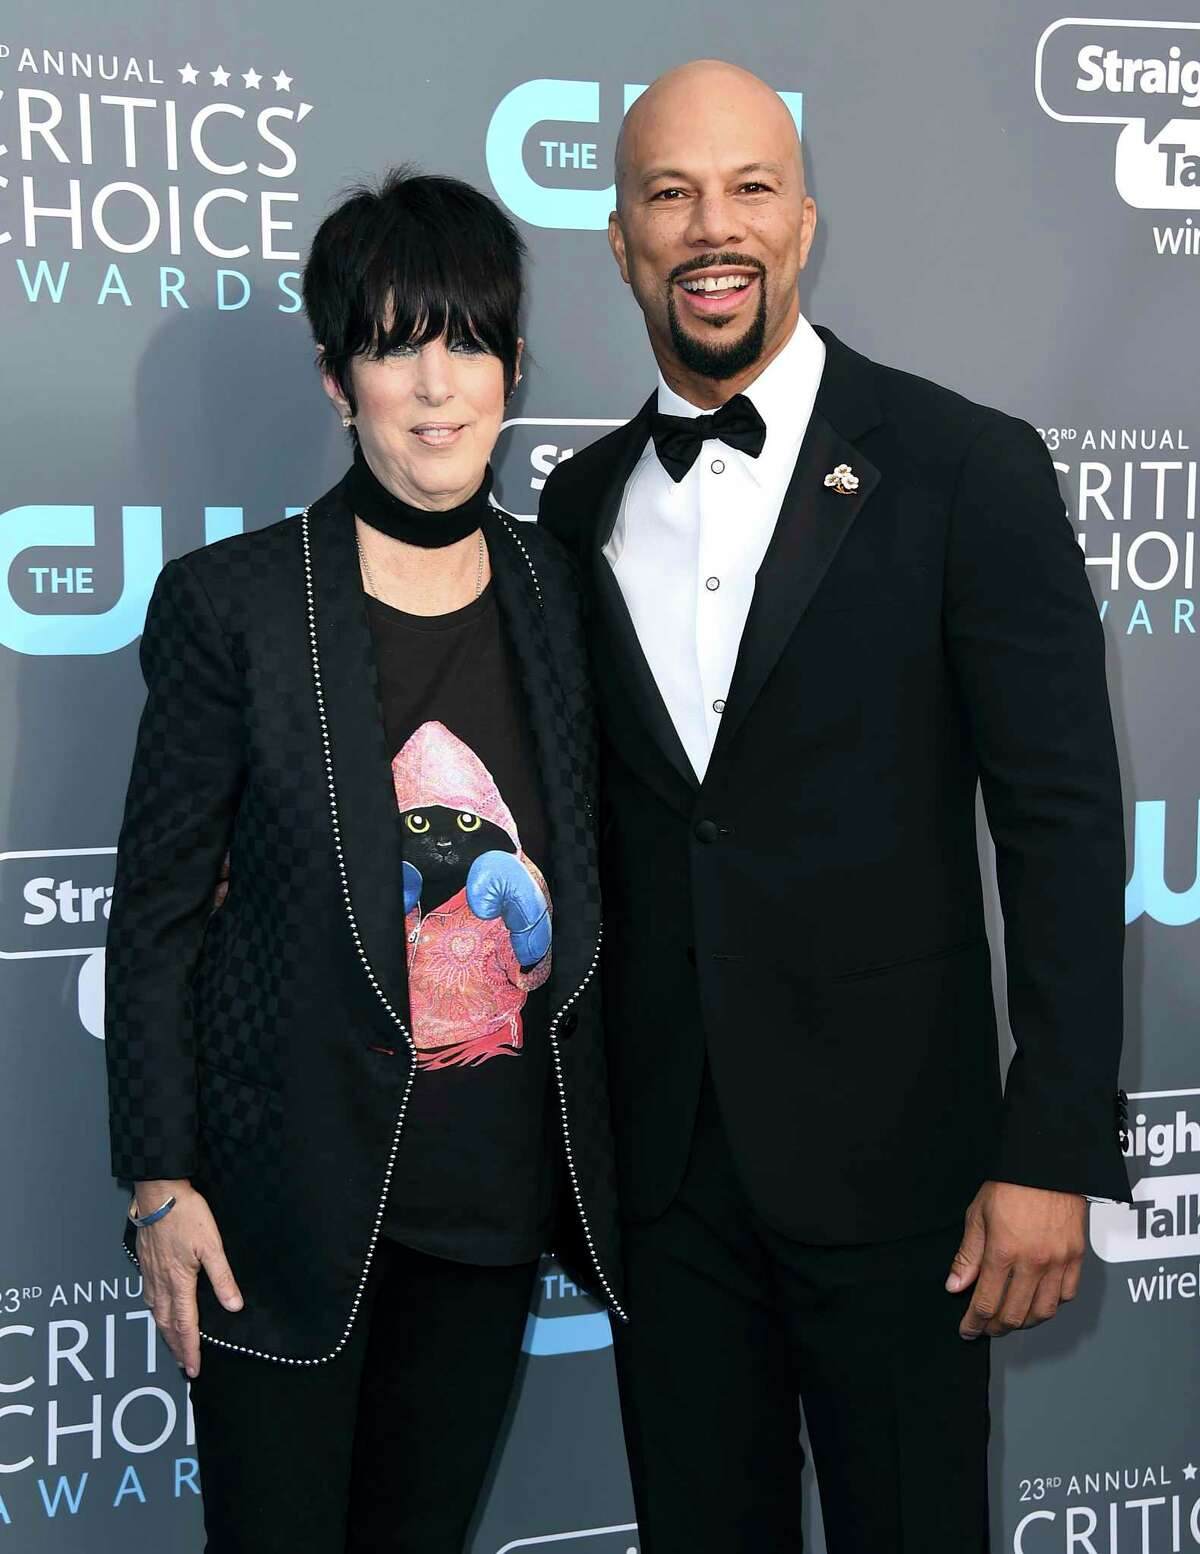 FILE - In this Jan. 11, 2018 file photo, Diane Warren, left, and Common arrive at the 23rd annual Critics' Choice Awards in Santa Monica, Calif. The pair were nominated for an Oscar for best original song for